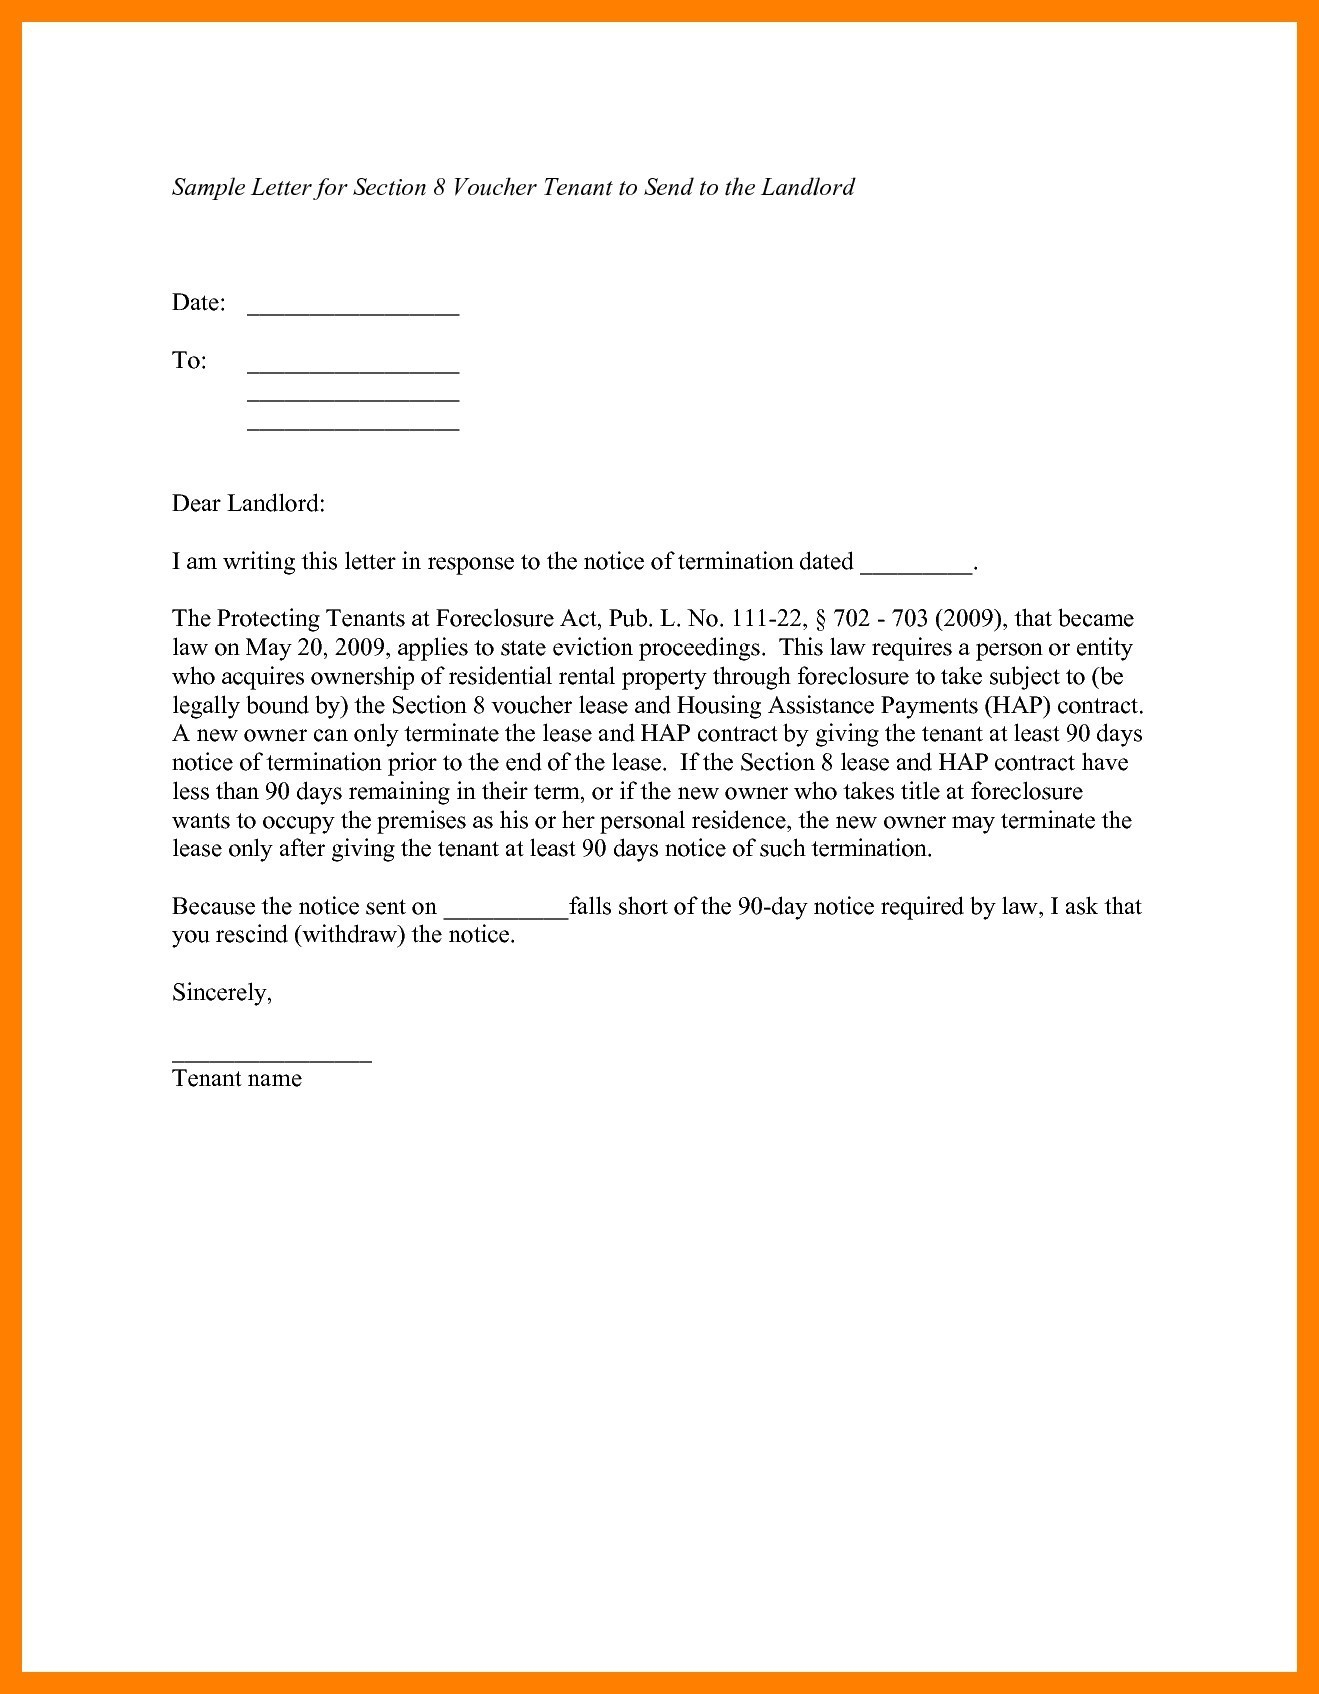 Notice Letter to Tenant From Landlord Template - Giving Notice to Landlord Template